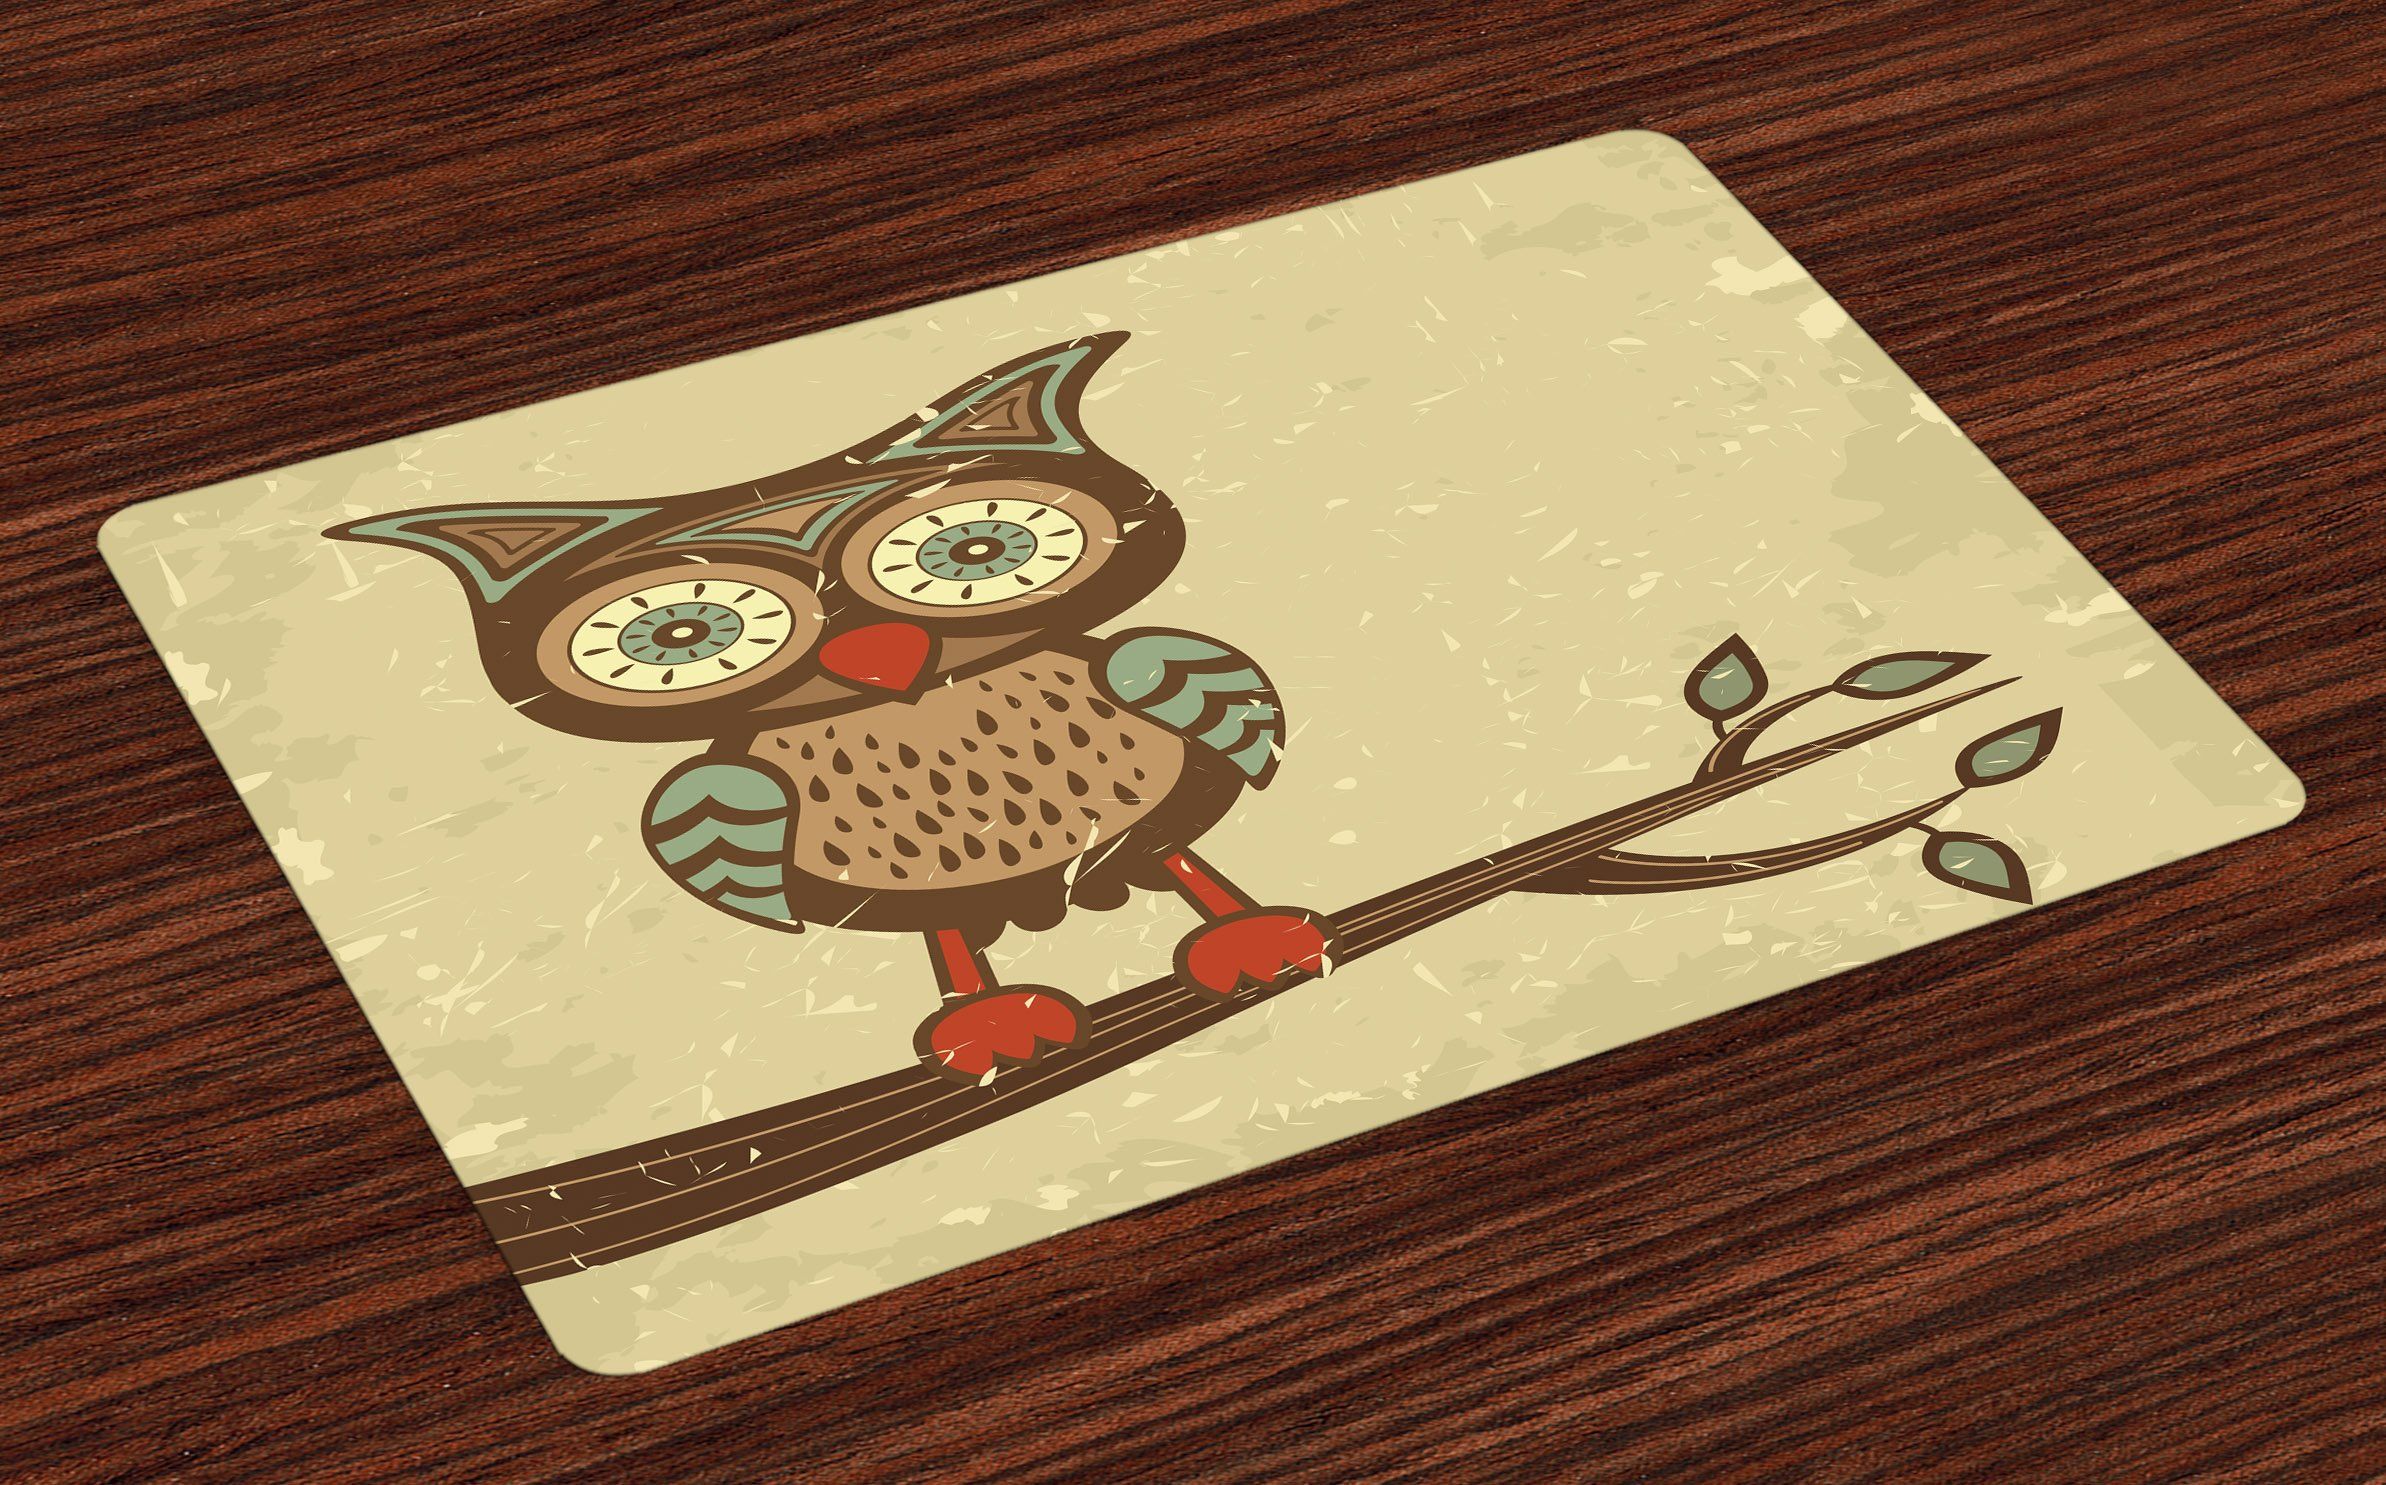 Ambesonne Owl Place Mats Set of 4, Cute Owl Sitting on Branch Eyesight Animal Humor Pastel Retro Modern Graphic, Washable Fabric Placemats for Dining Room Kitchen Table Decor, Brown Cream Red Teal